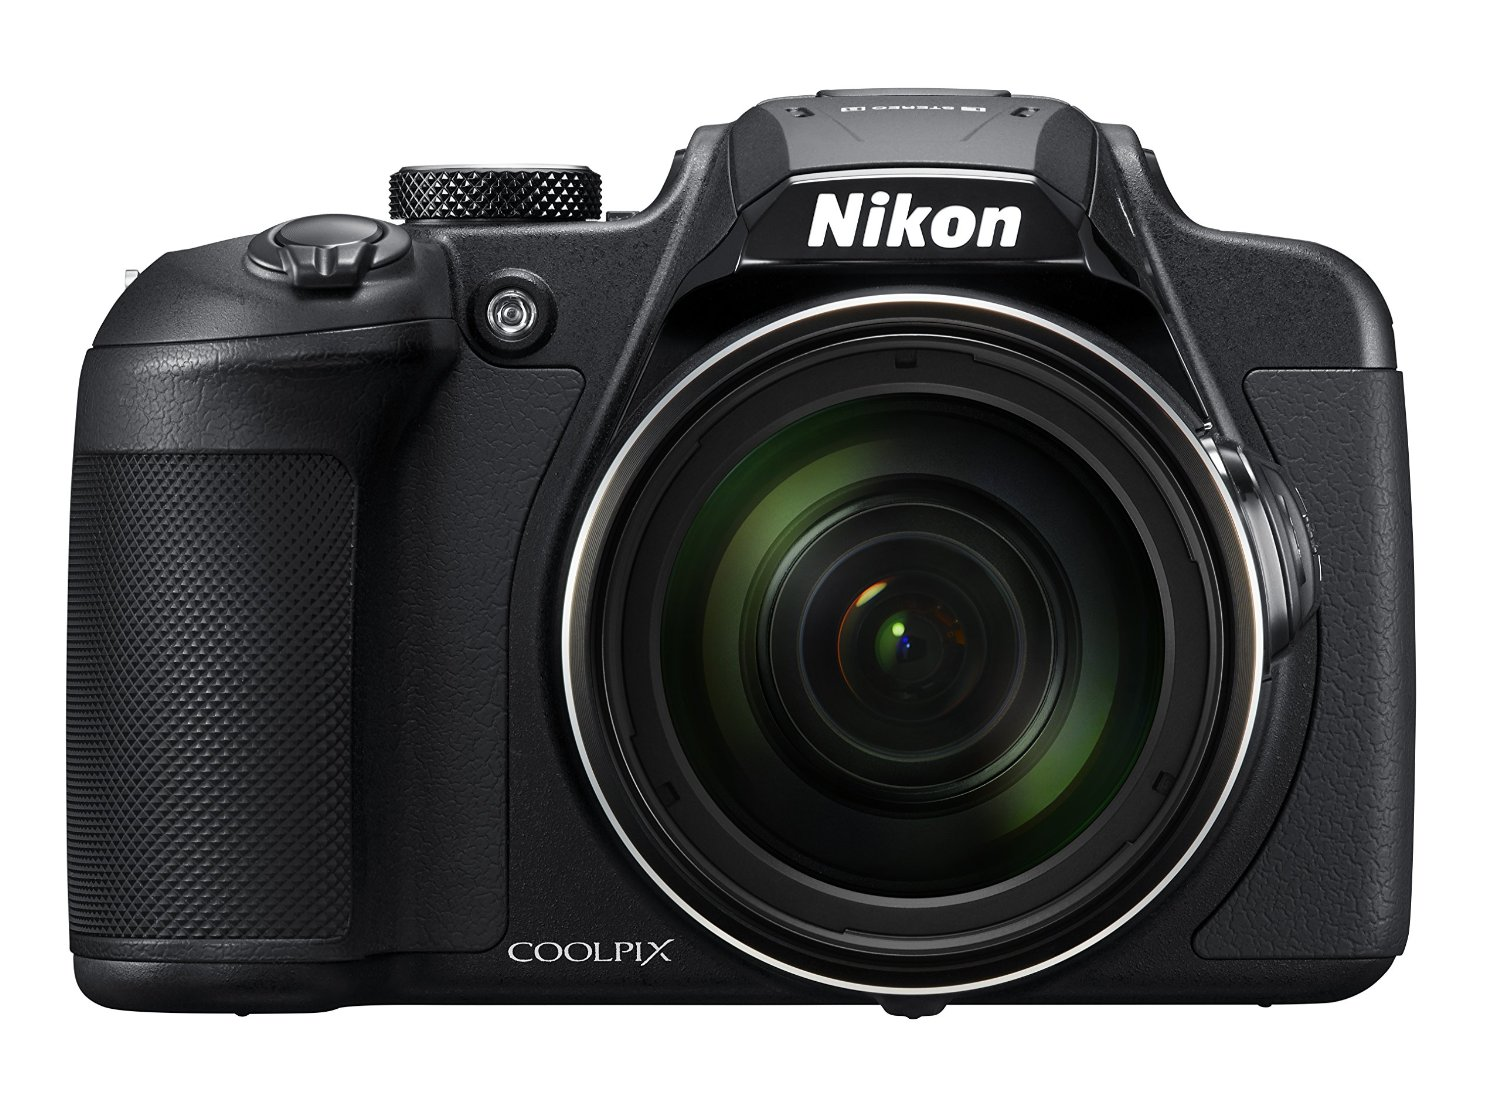 nikon coolpix b700 nikon coolpix b700 review price model picture quality 525